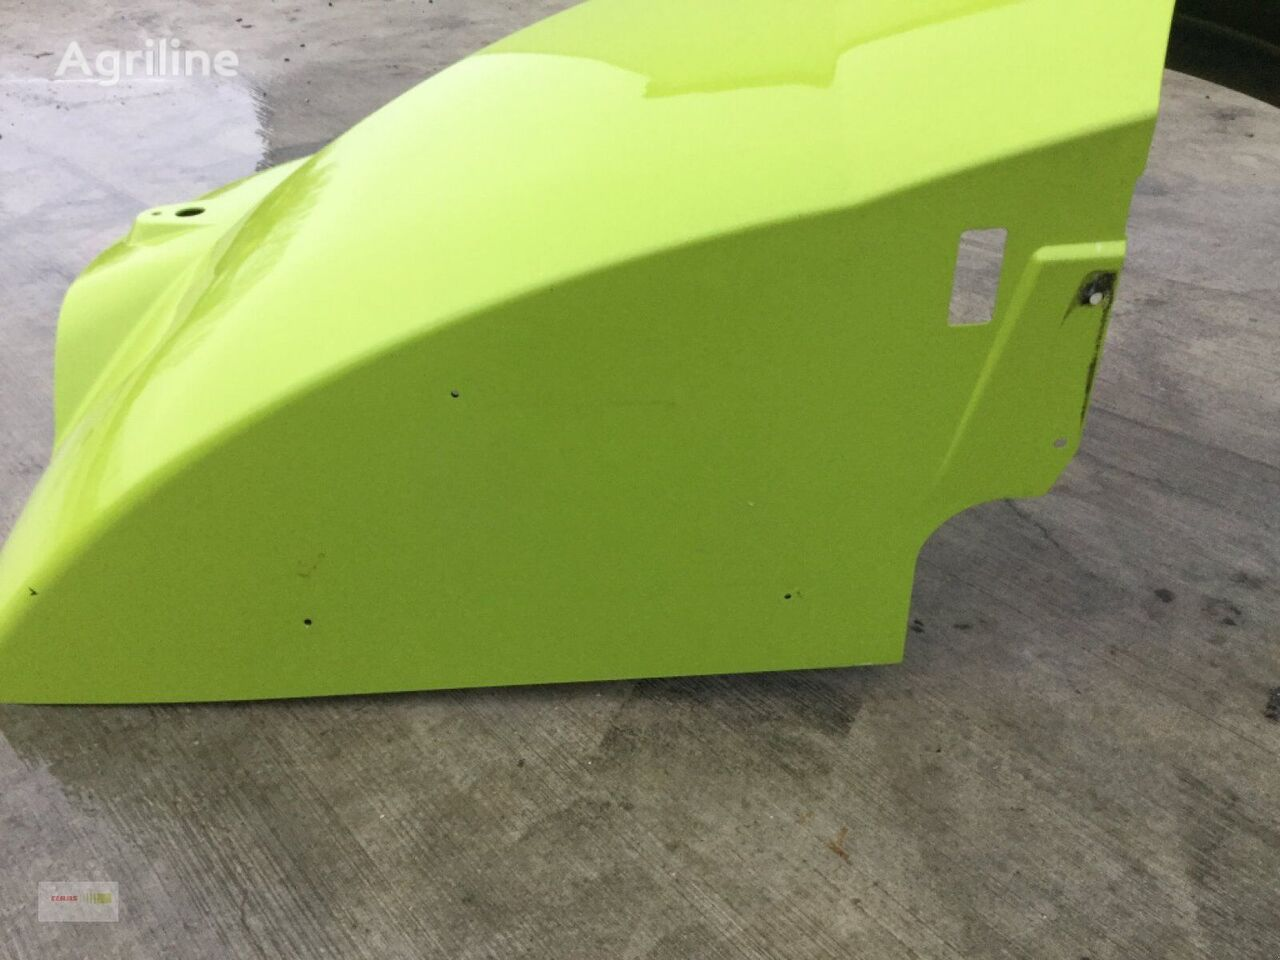 new Kotflügel Links front fascia for CLAAS Axion 900 Typ A23 tractor